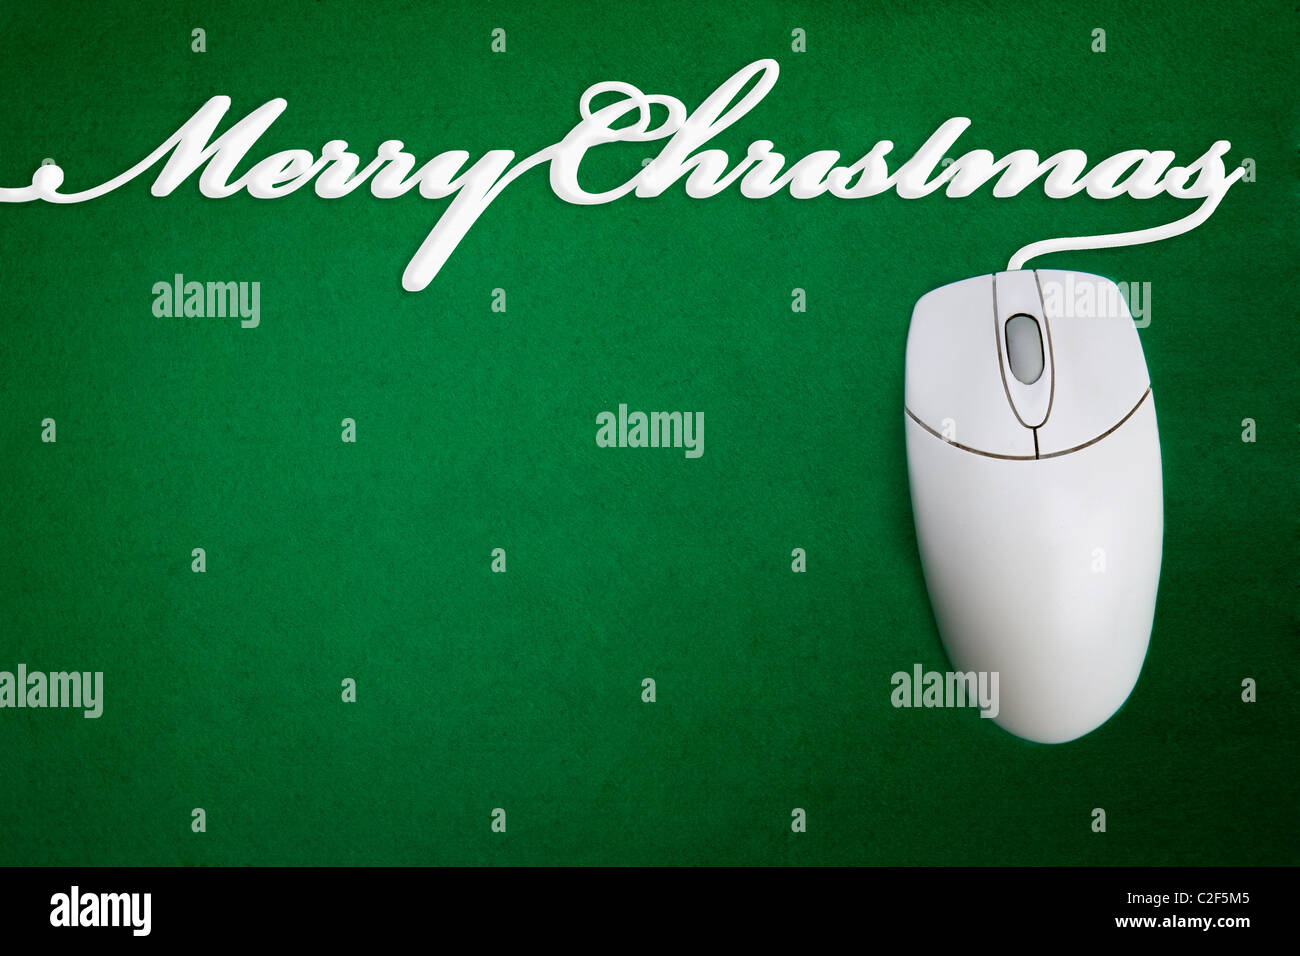 Christmas greet stock photos christmas greet stock images alamy a mouse cord spelling merry christmas stock image m4hsunfo